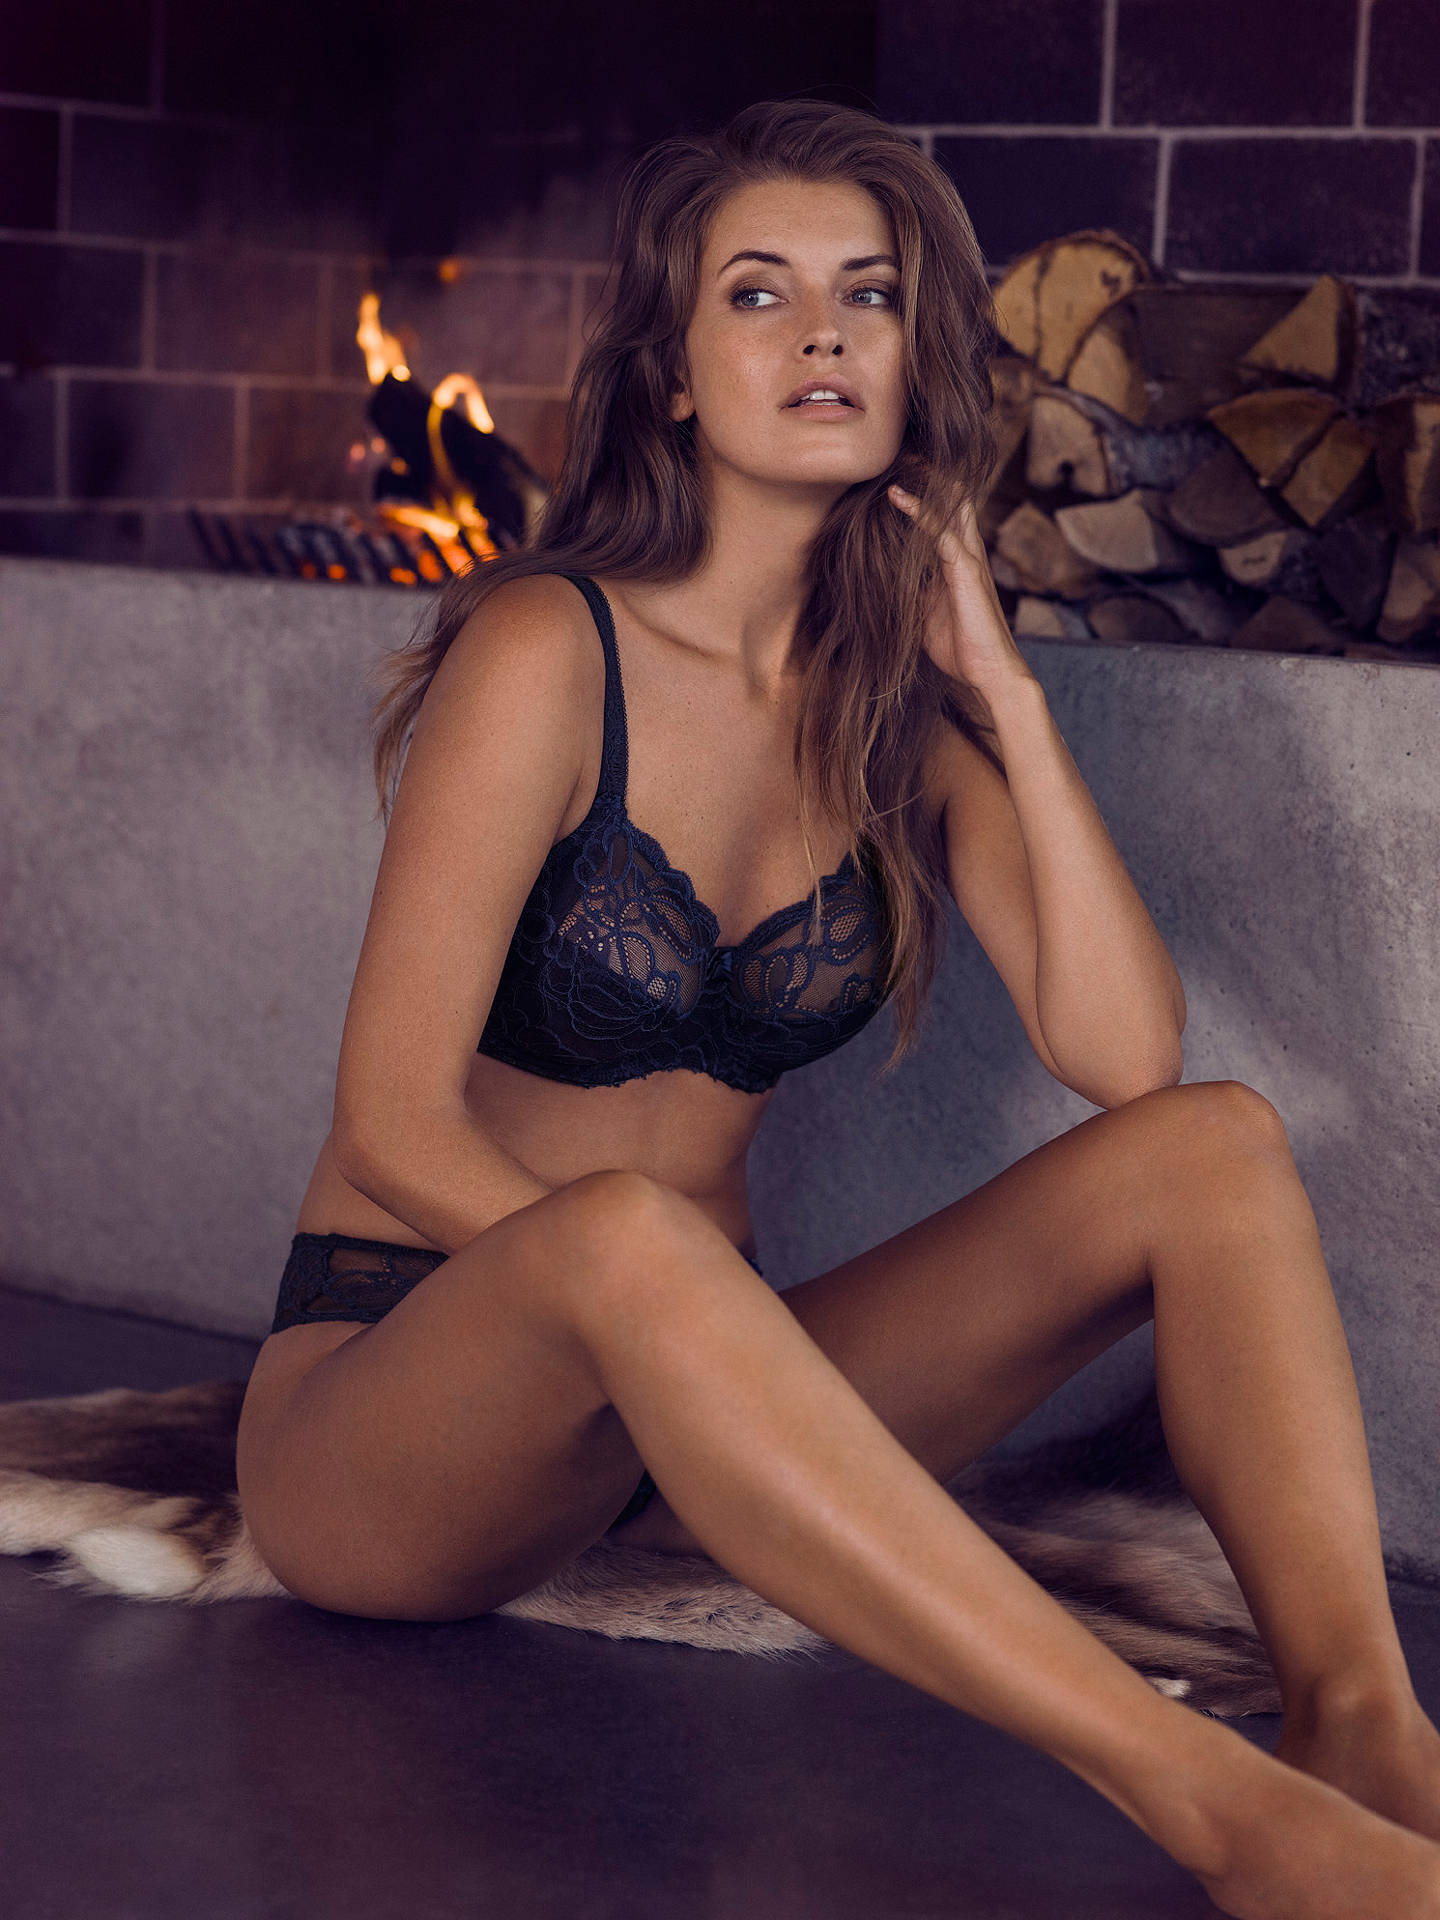 6276a4dd1d74e ... Buy Fantasie Jacqueline Lace Full Cup Bra, Navy, 36E Online at  johnlewis.com ...